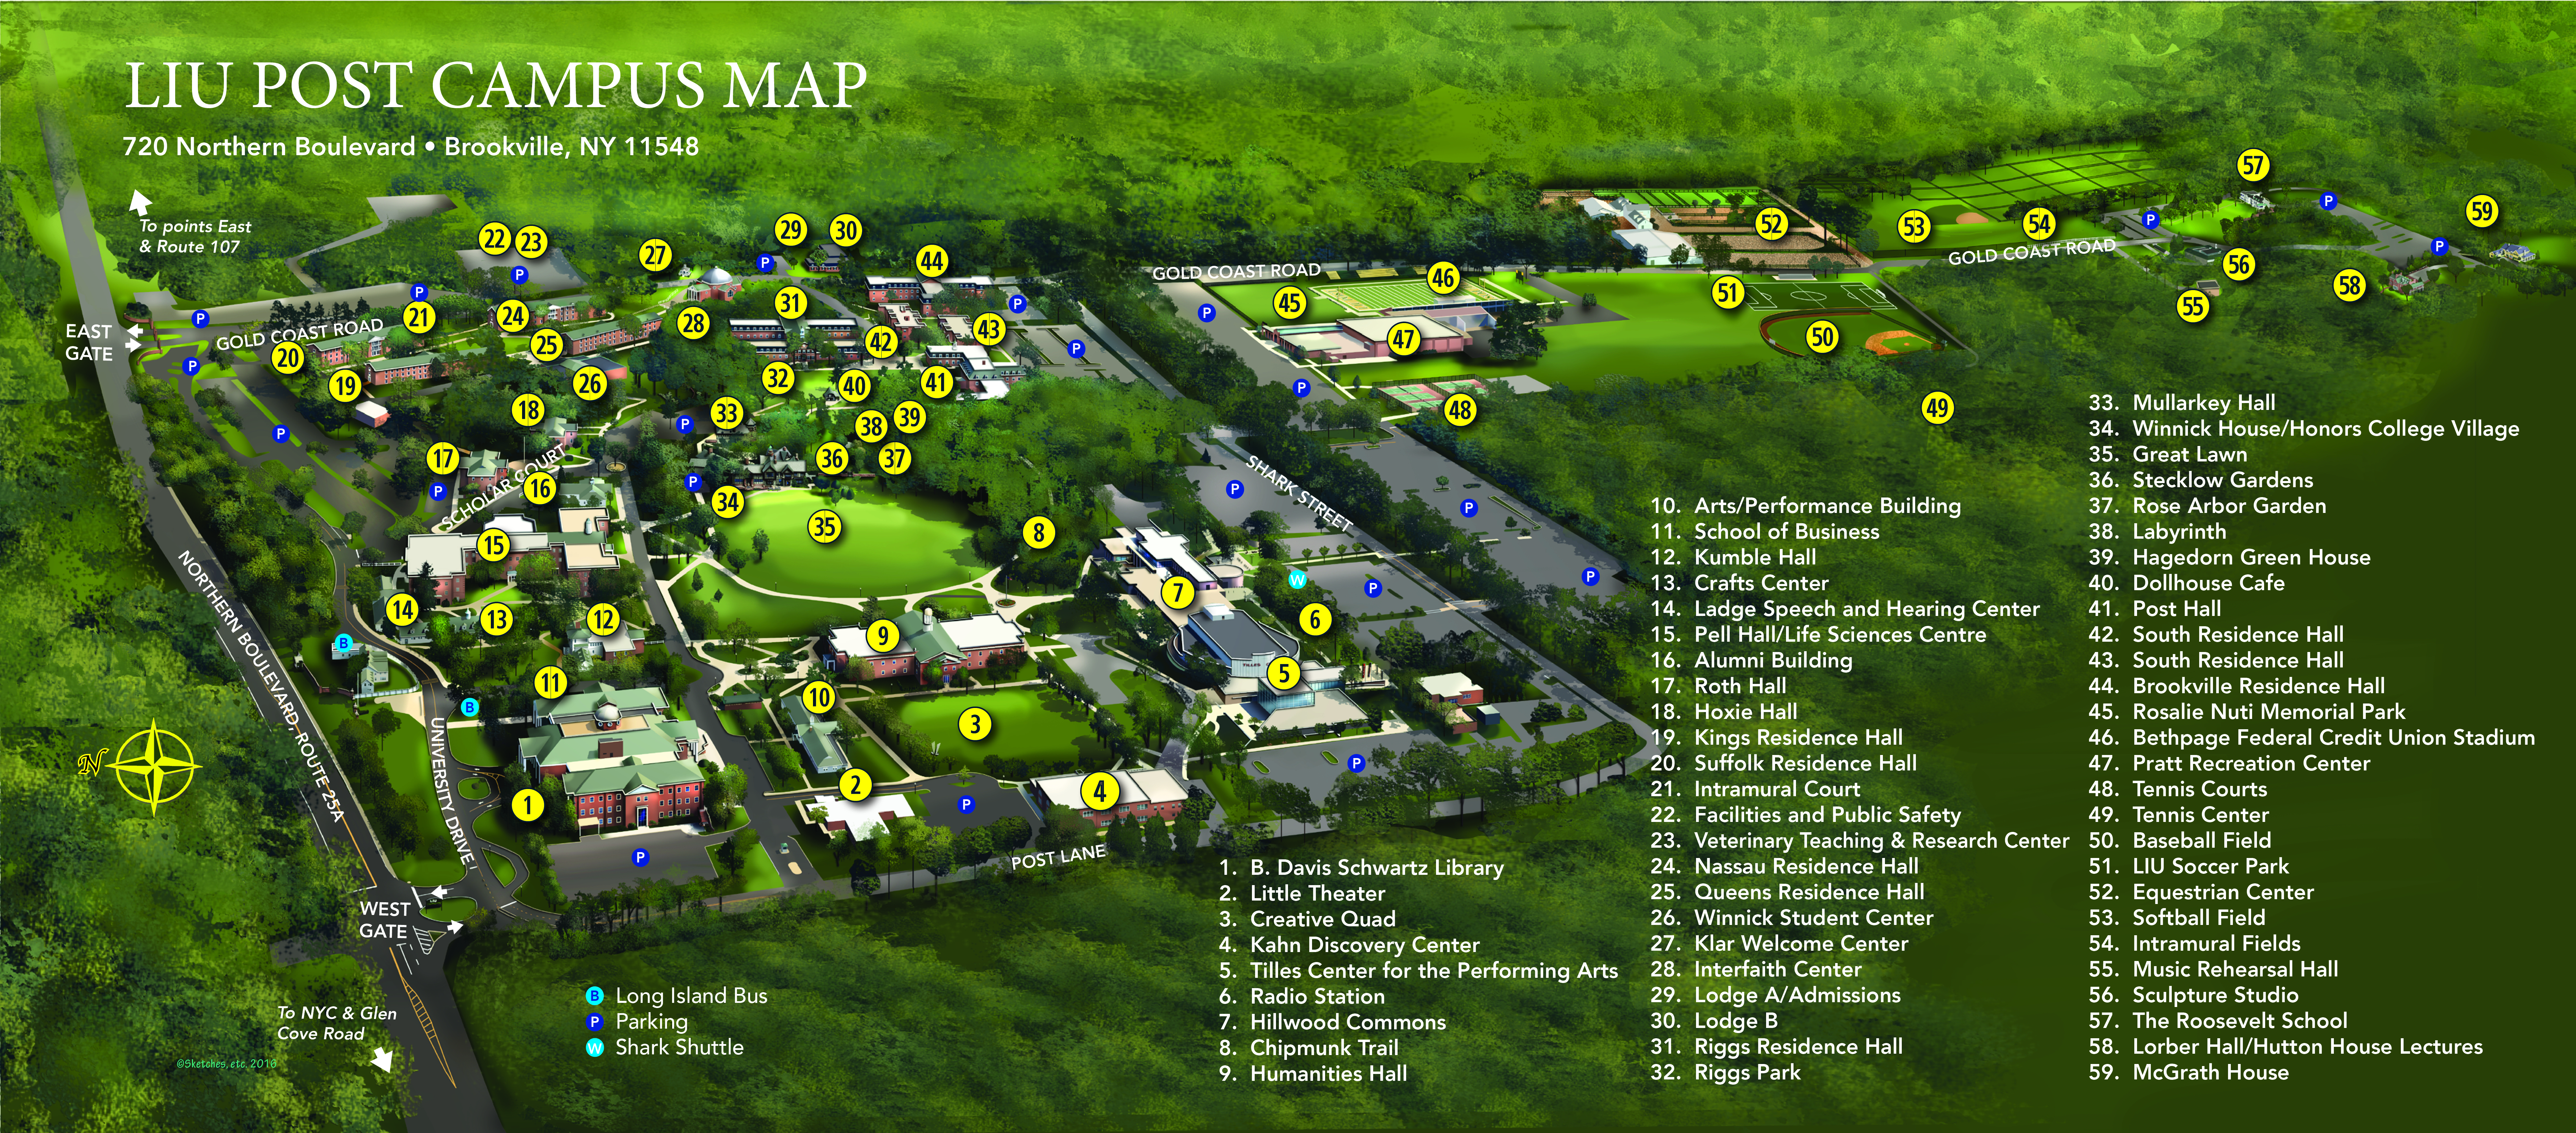 Brockton Va Campus Map.Campus Map Liu